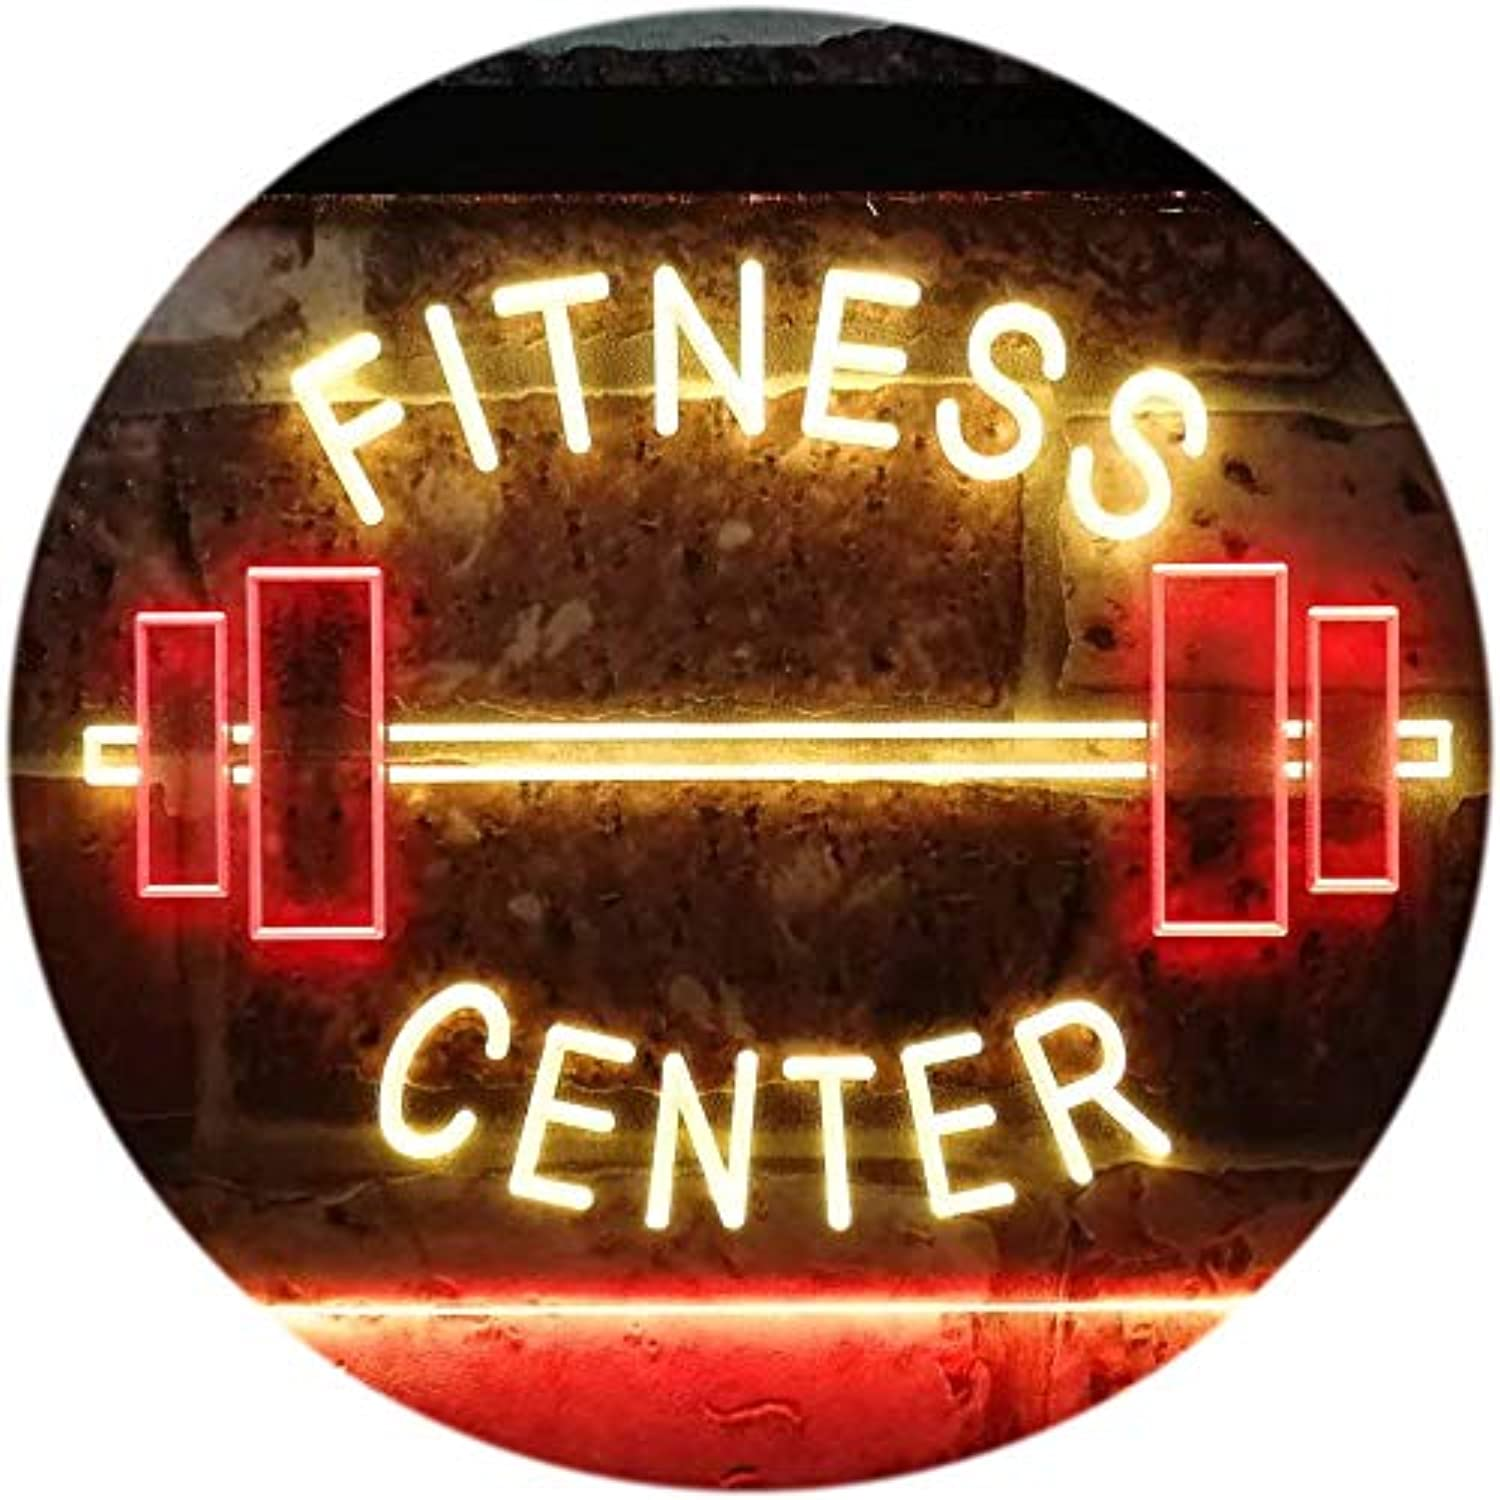 ADVPRO Fitness Center Gym Room Weight Train Dual Farbe LED Barlicht Neonlicht Lichtwerbung Neon Sign rot & Gelb 400mm x 300mm st6s43-i0313-ry